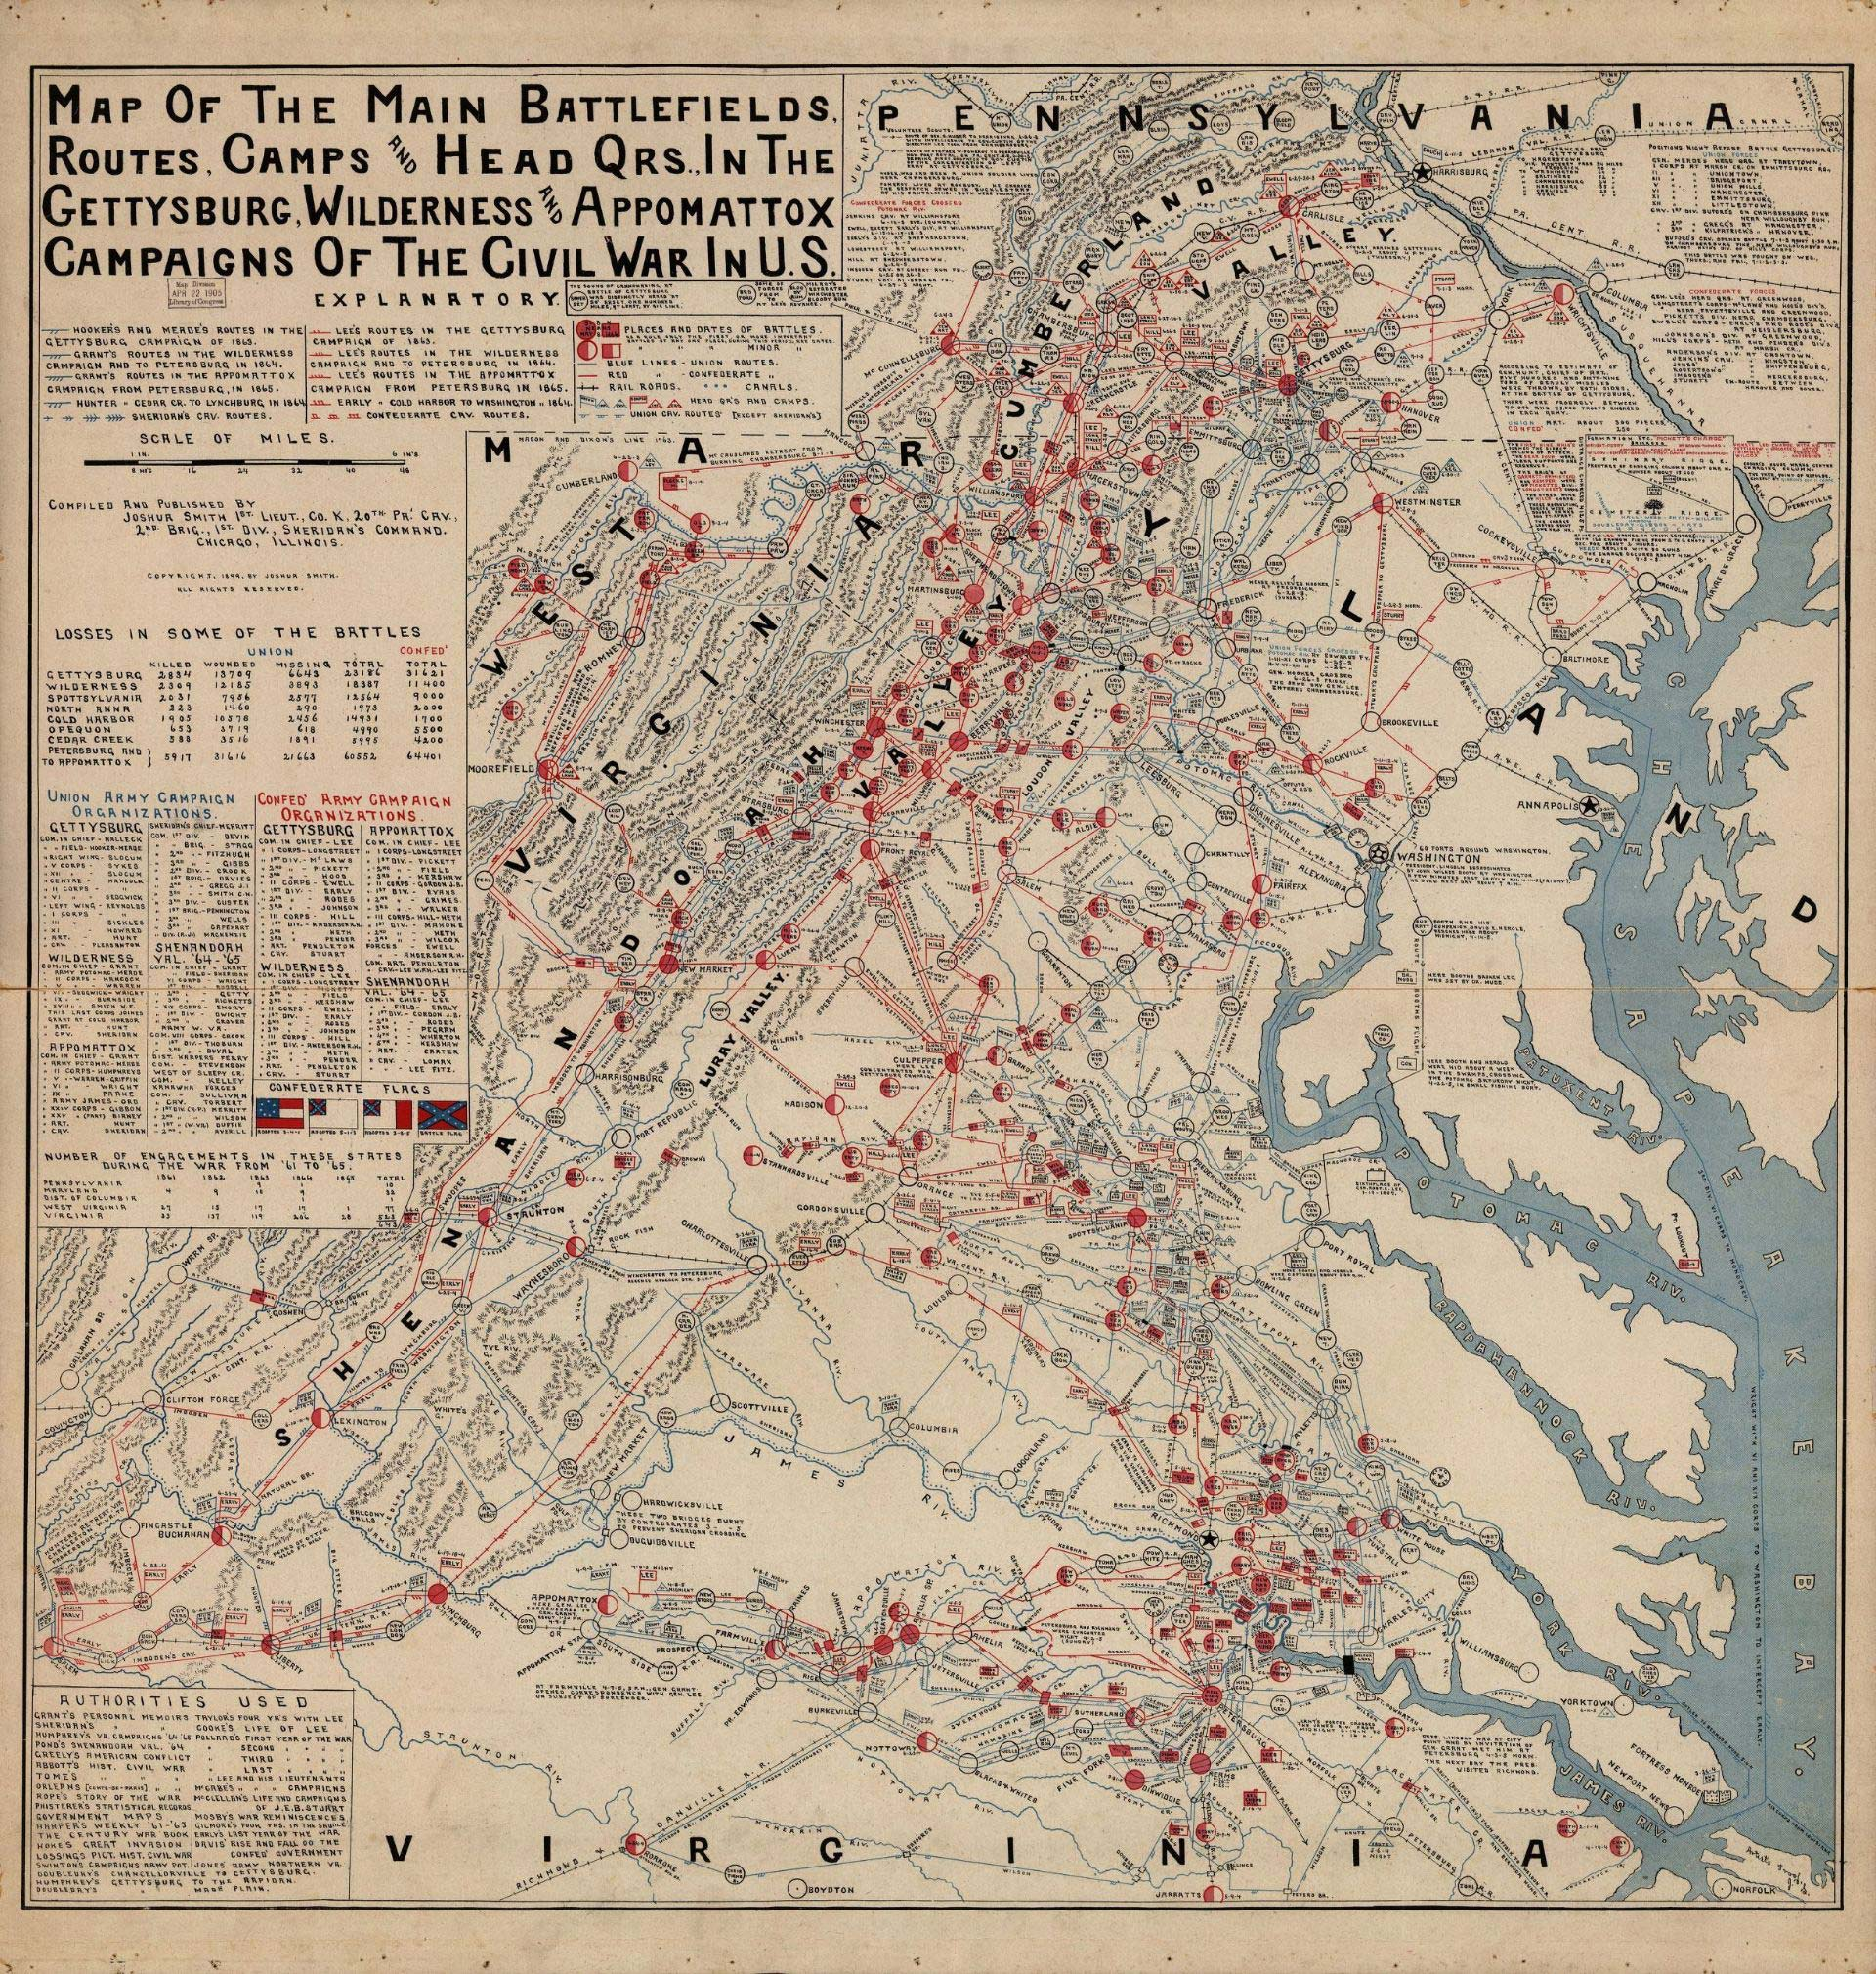 A map shows military actions in the second half of the Civil War in Virginia.